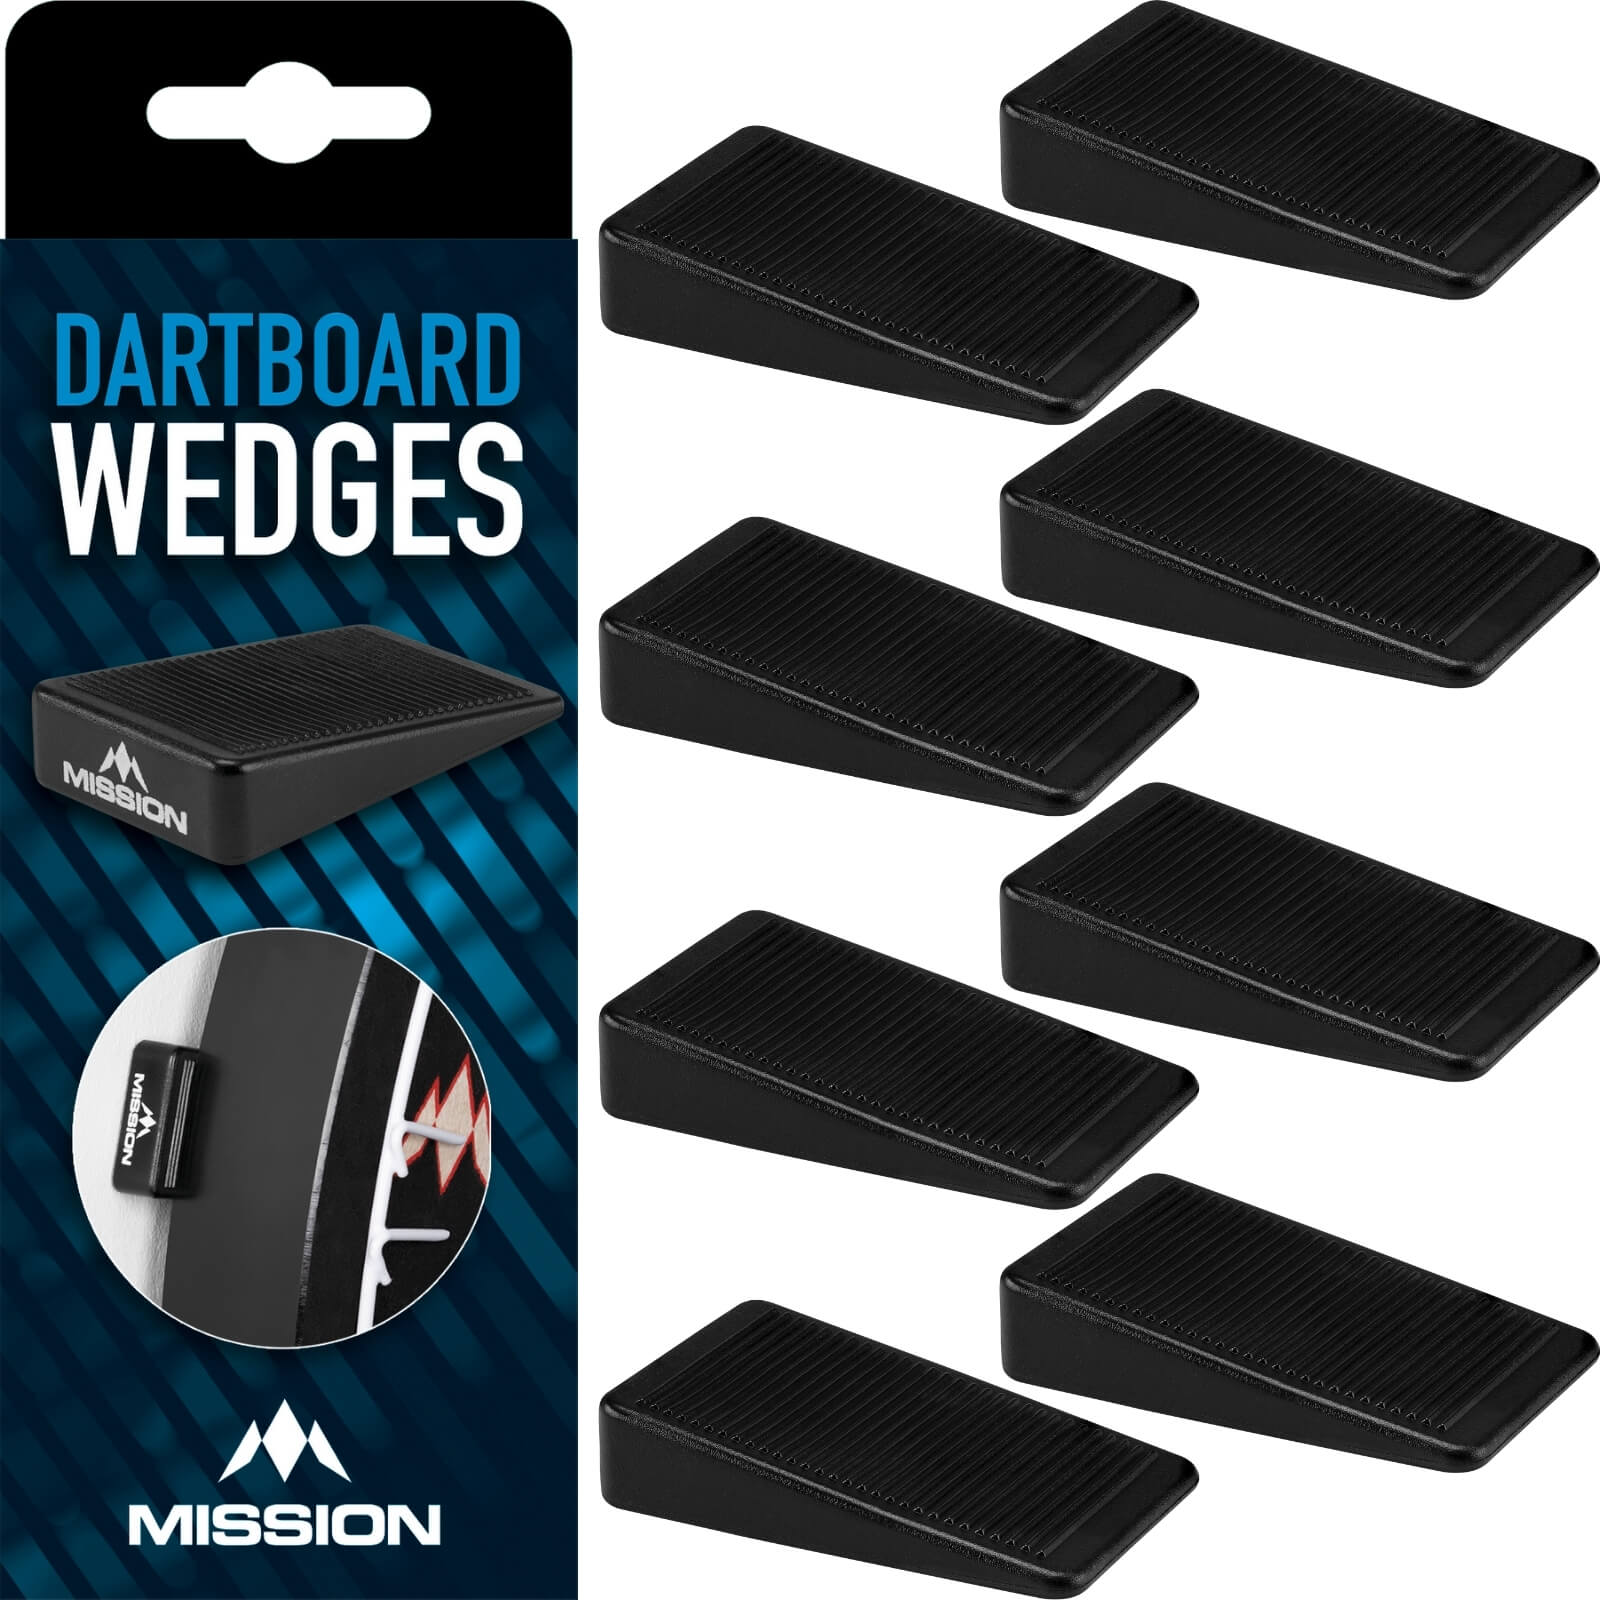 Dartboard Accessories - Mission - Dartboard Wedges - 8 Pack